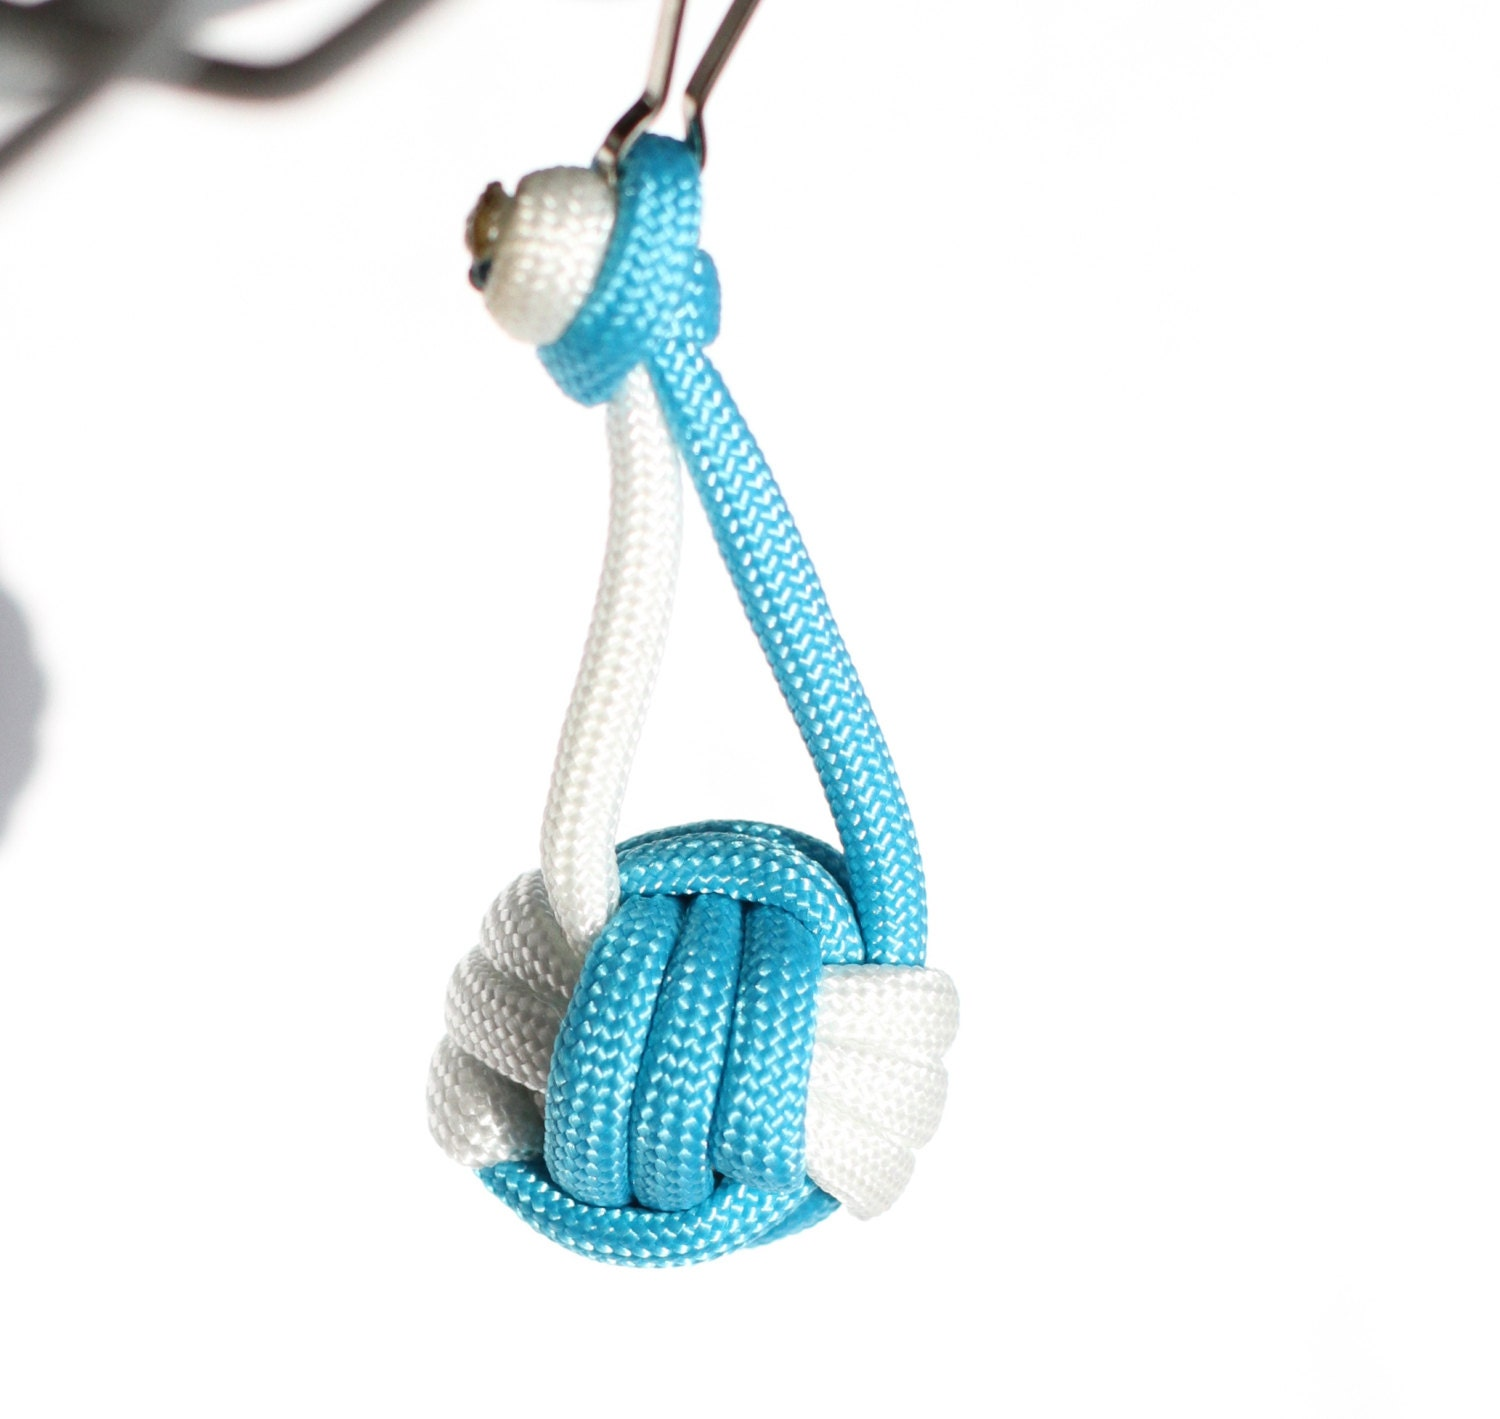 Paracord monkey fist knot volleyball accessories keychain for How to make a keychain out of paracord